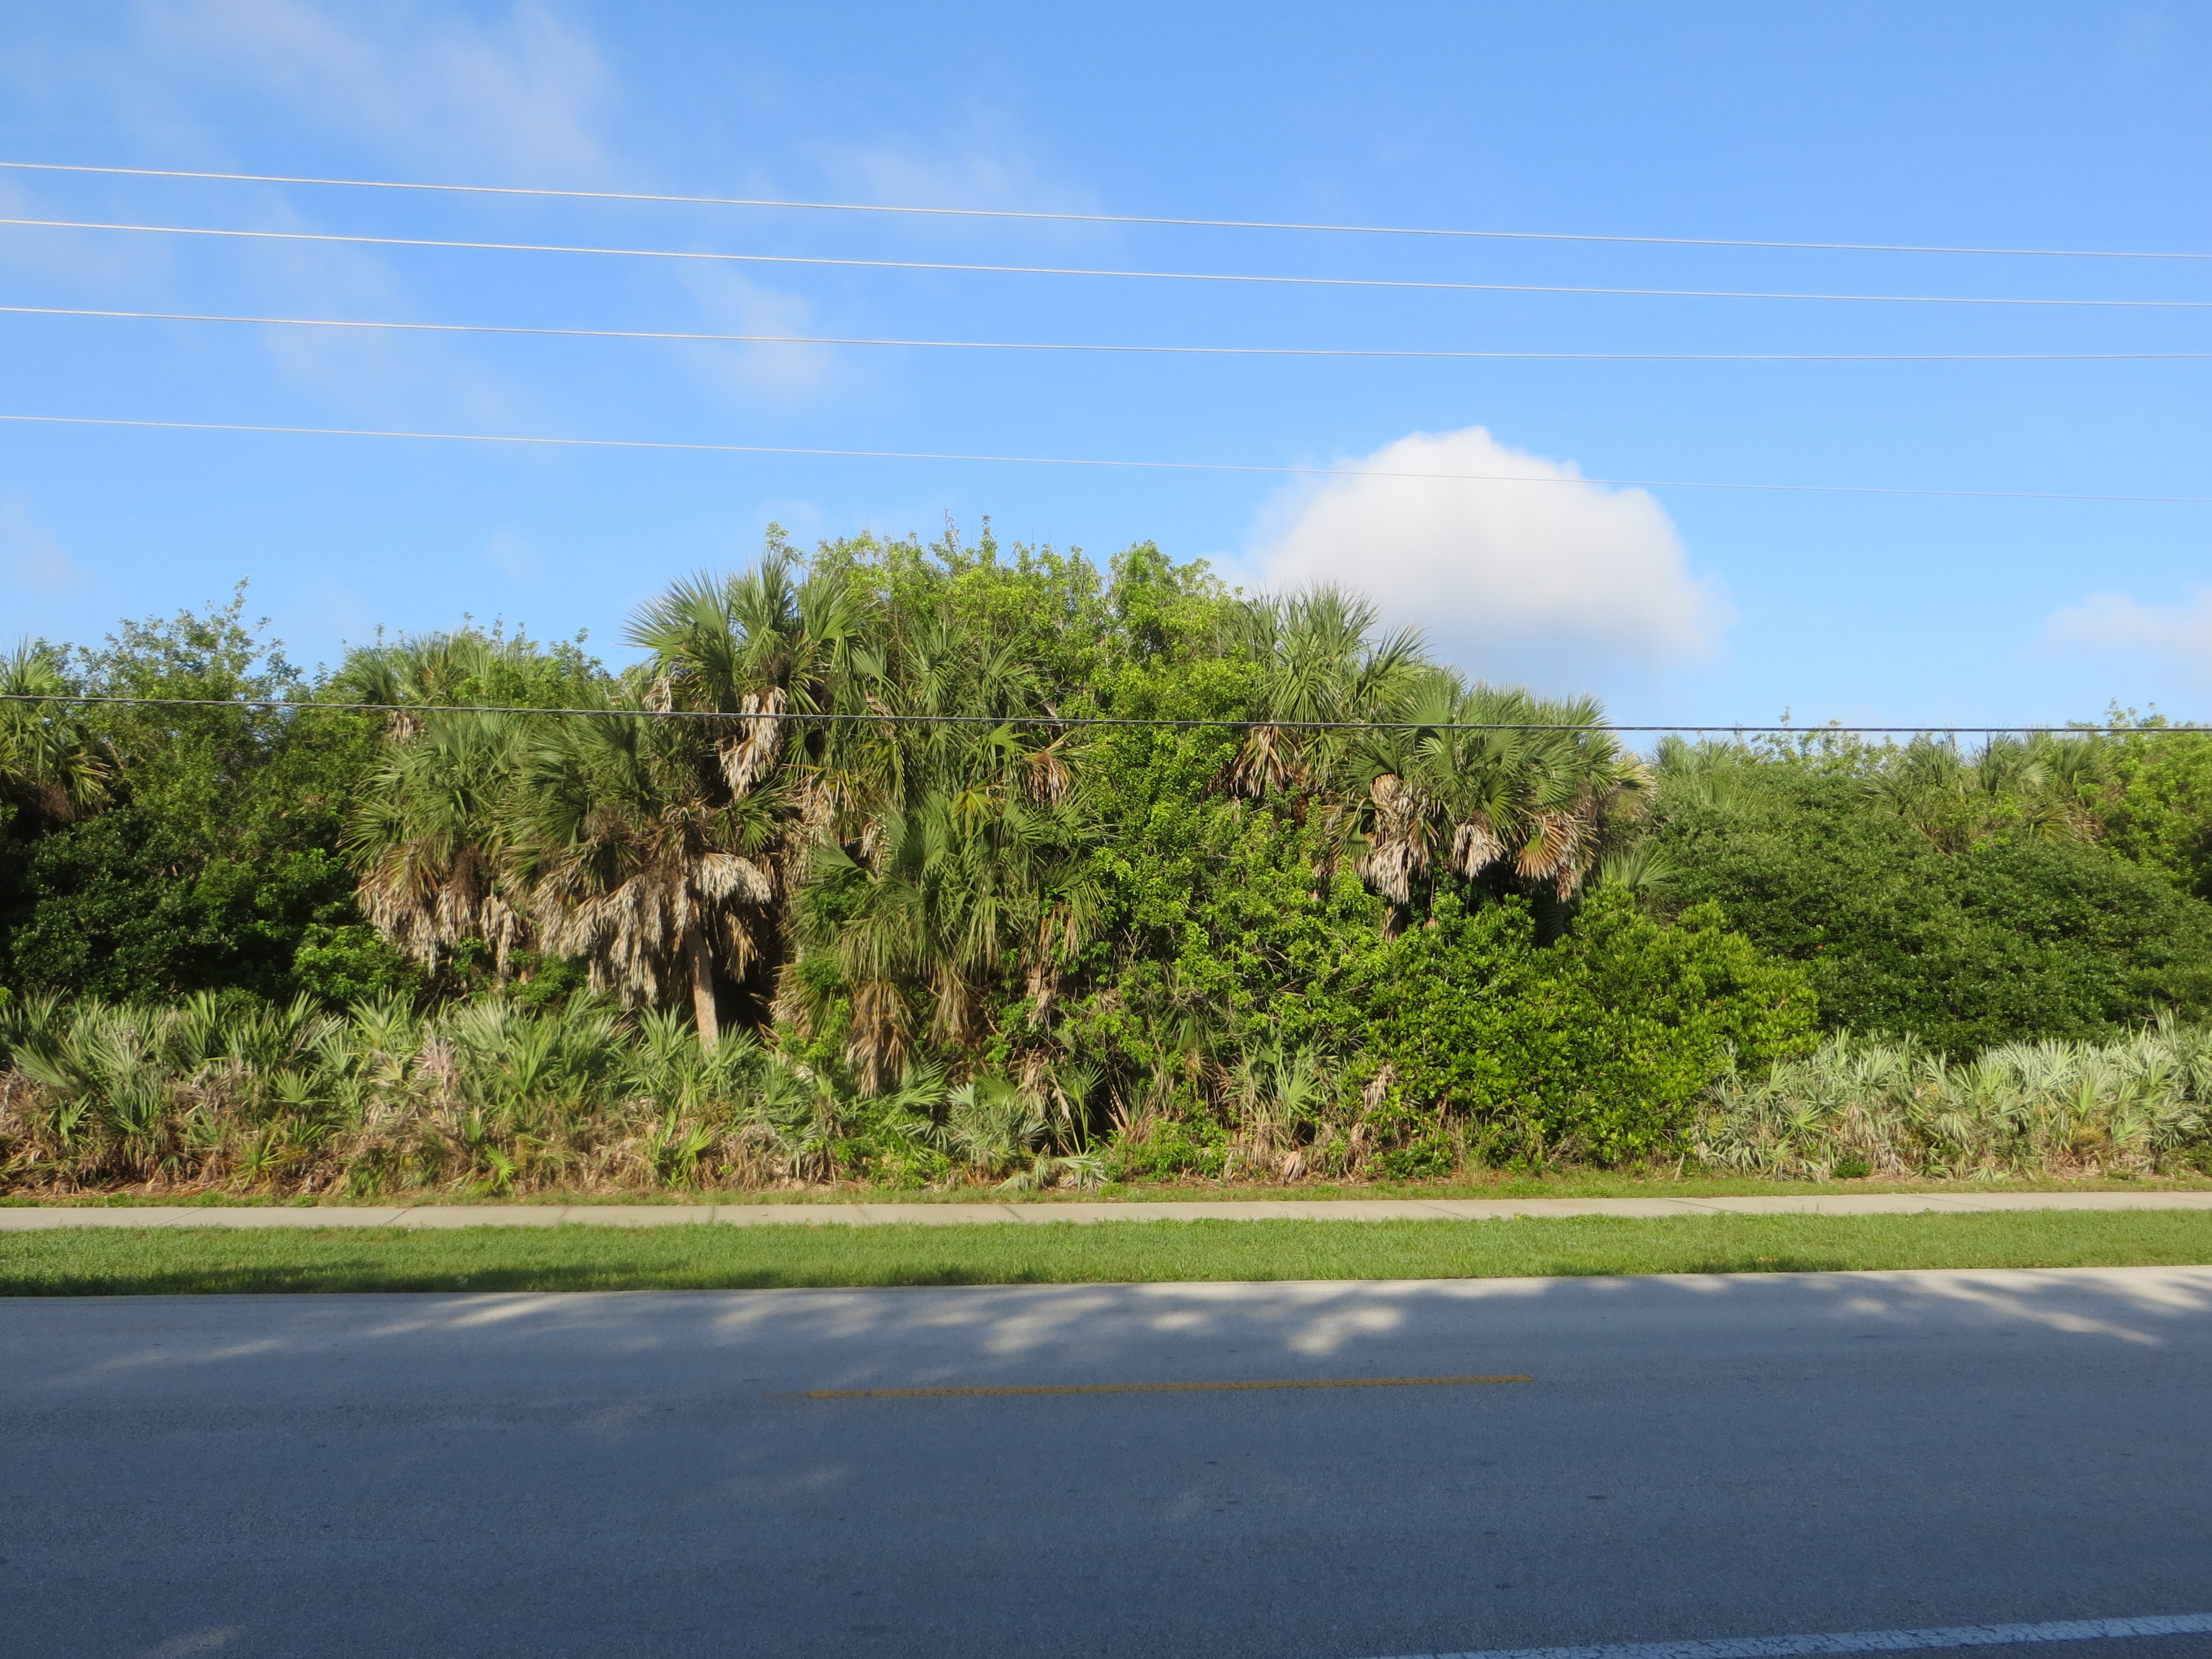 Dense growth lining the road - nice shade in the early morning,  as we headed north.